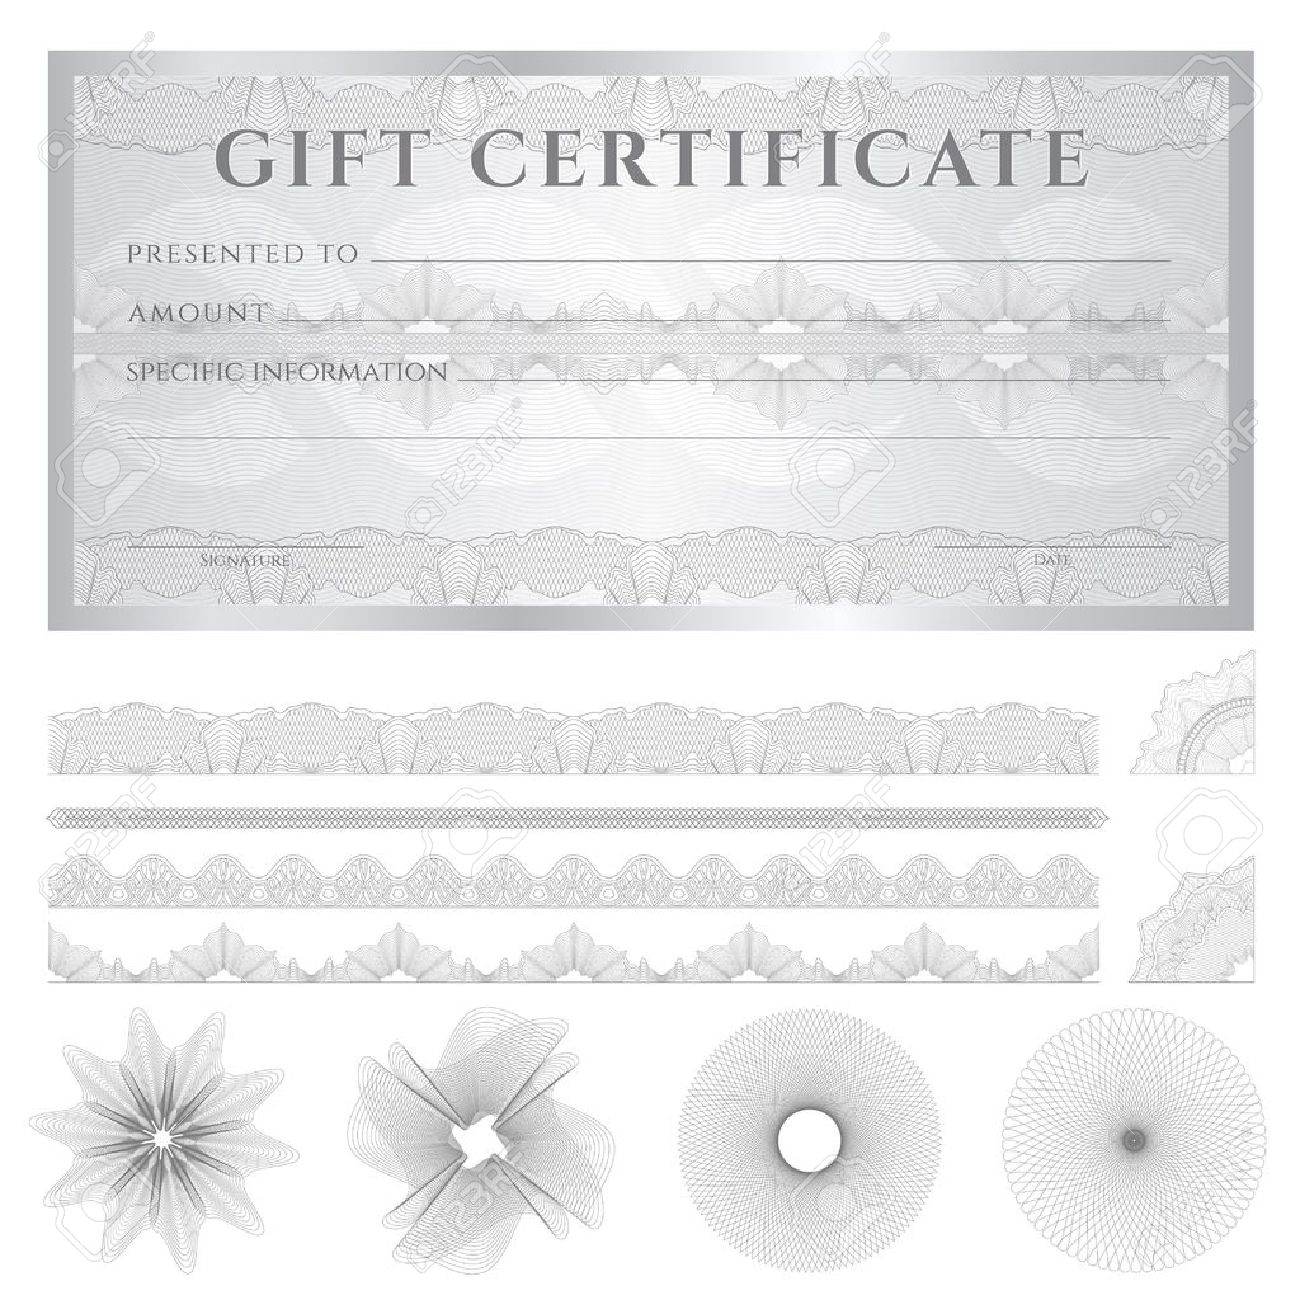 doc coupon layout coupon layout sample coupon template gift certificate voucher coupon template layout guilloche coupon layout